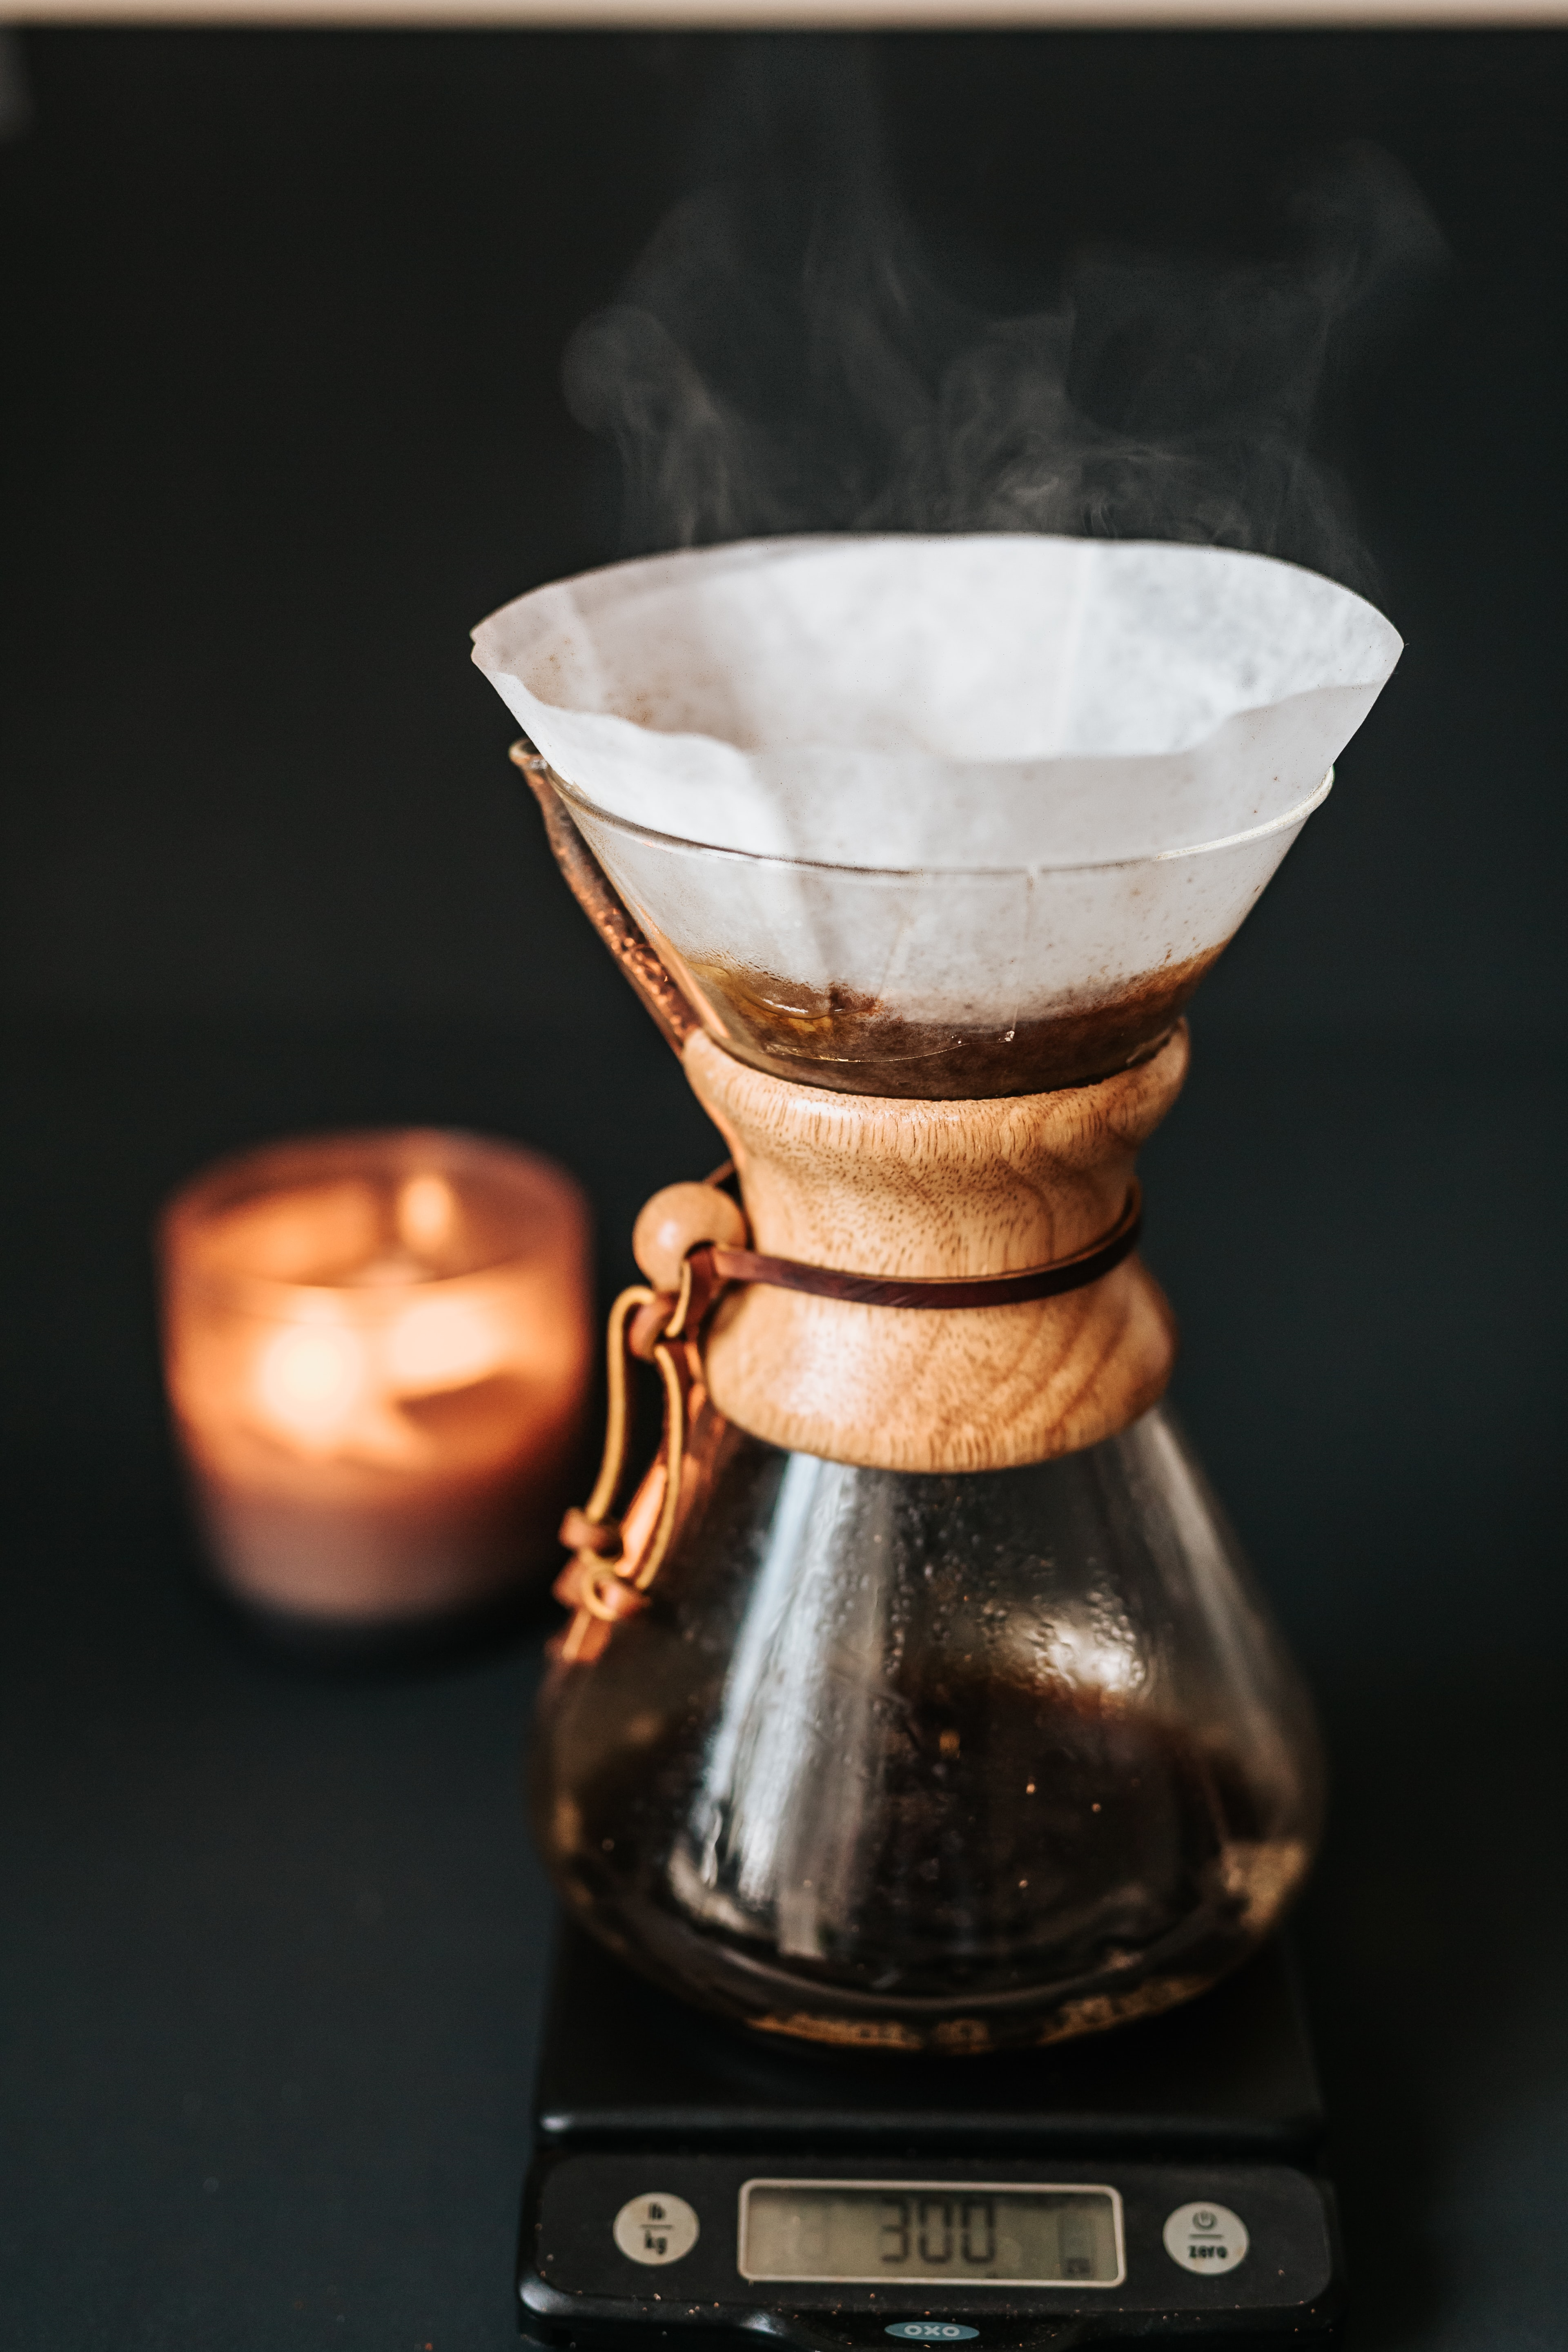 coffee in clear glass container on top of digital scale 300